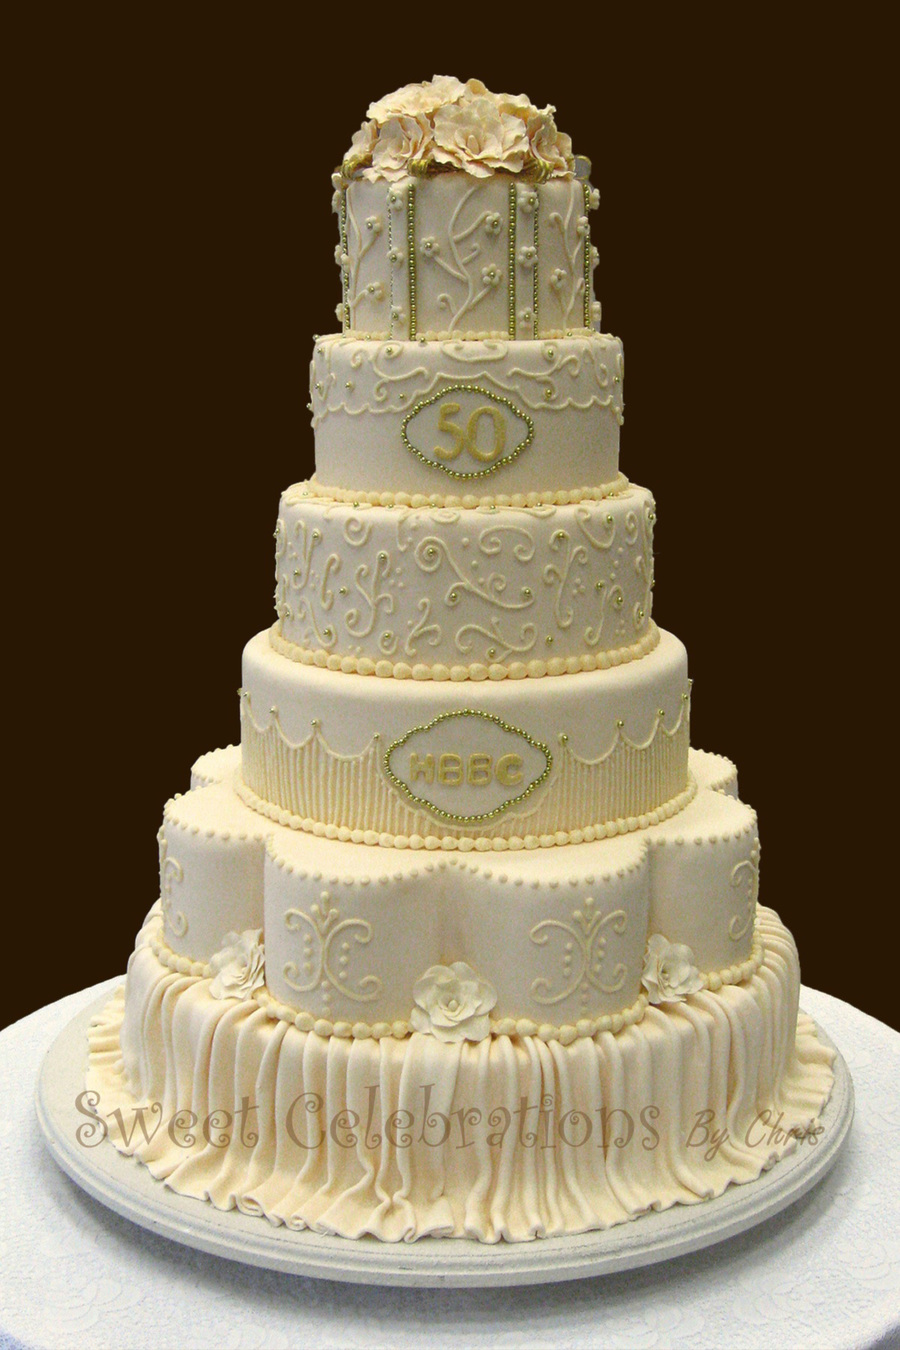 50th wedding anniversary cake - Th anniversary cake decorations ...